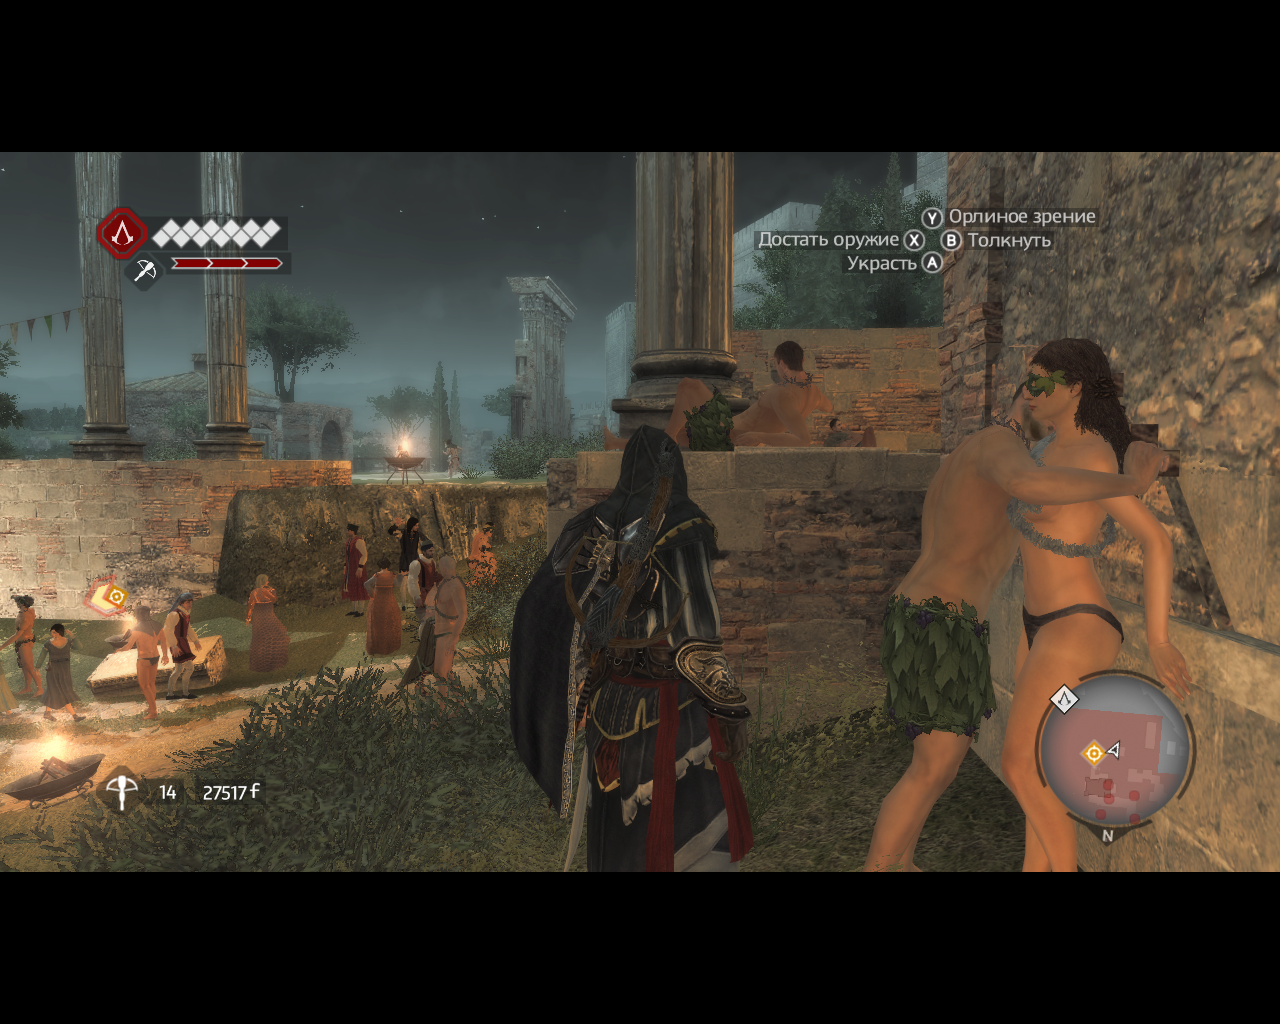 Assassin's Creed: Brotherhood Windows There's some kind of carnival